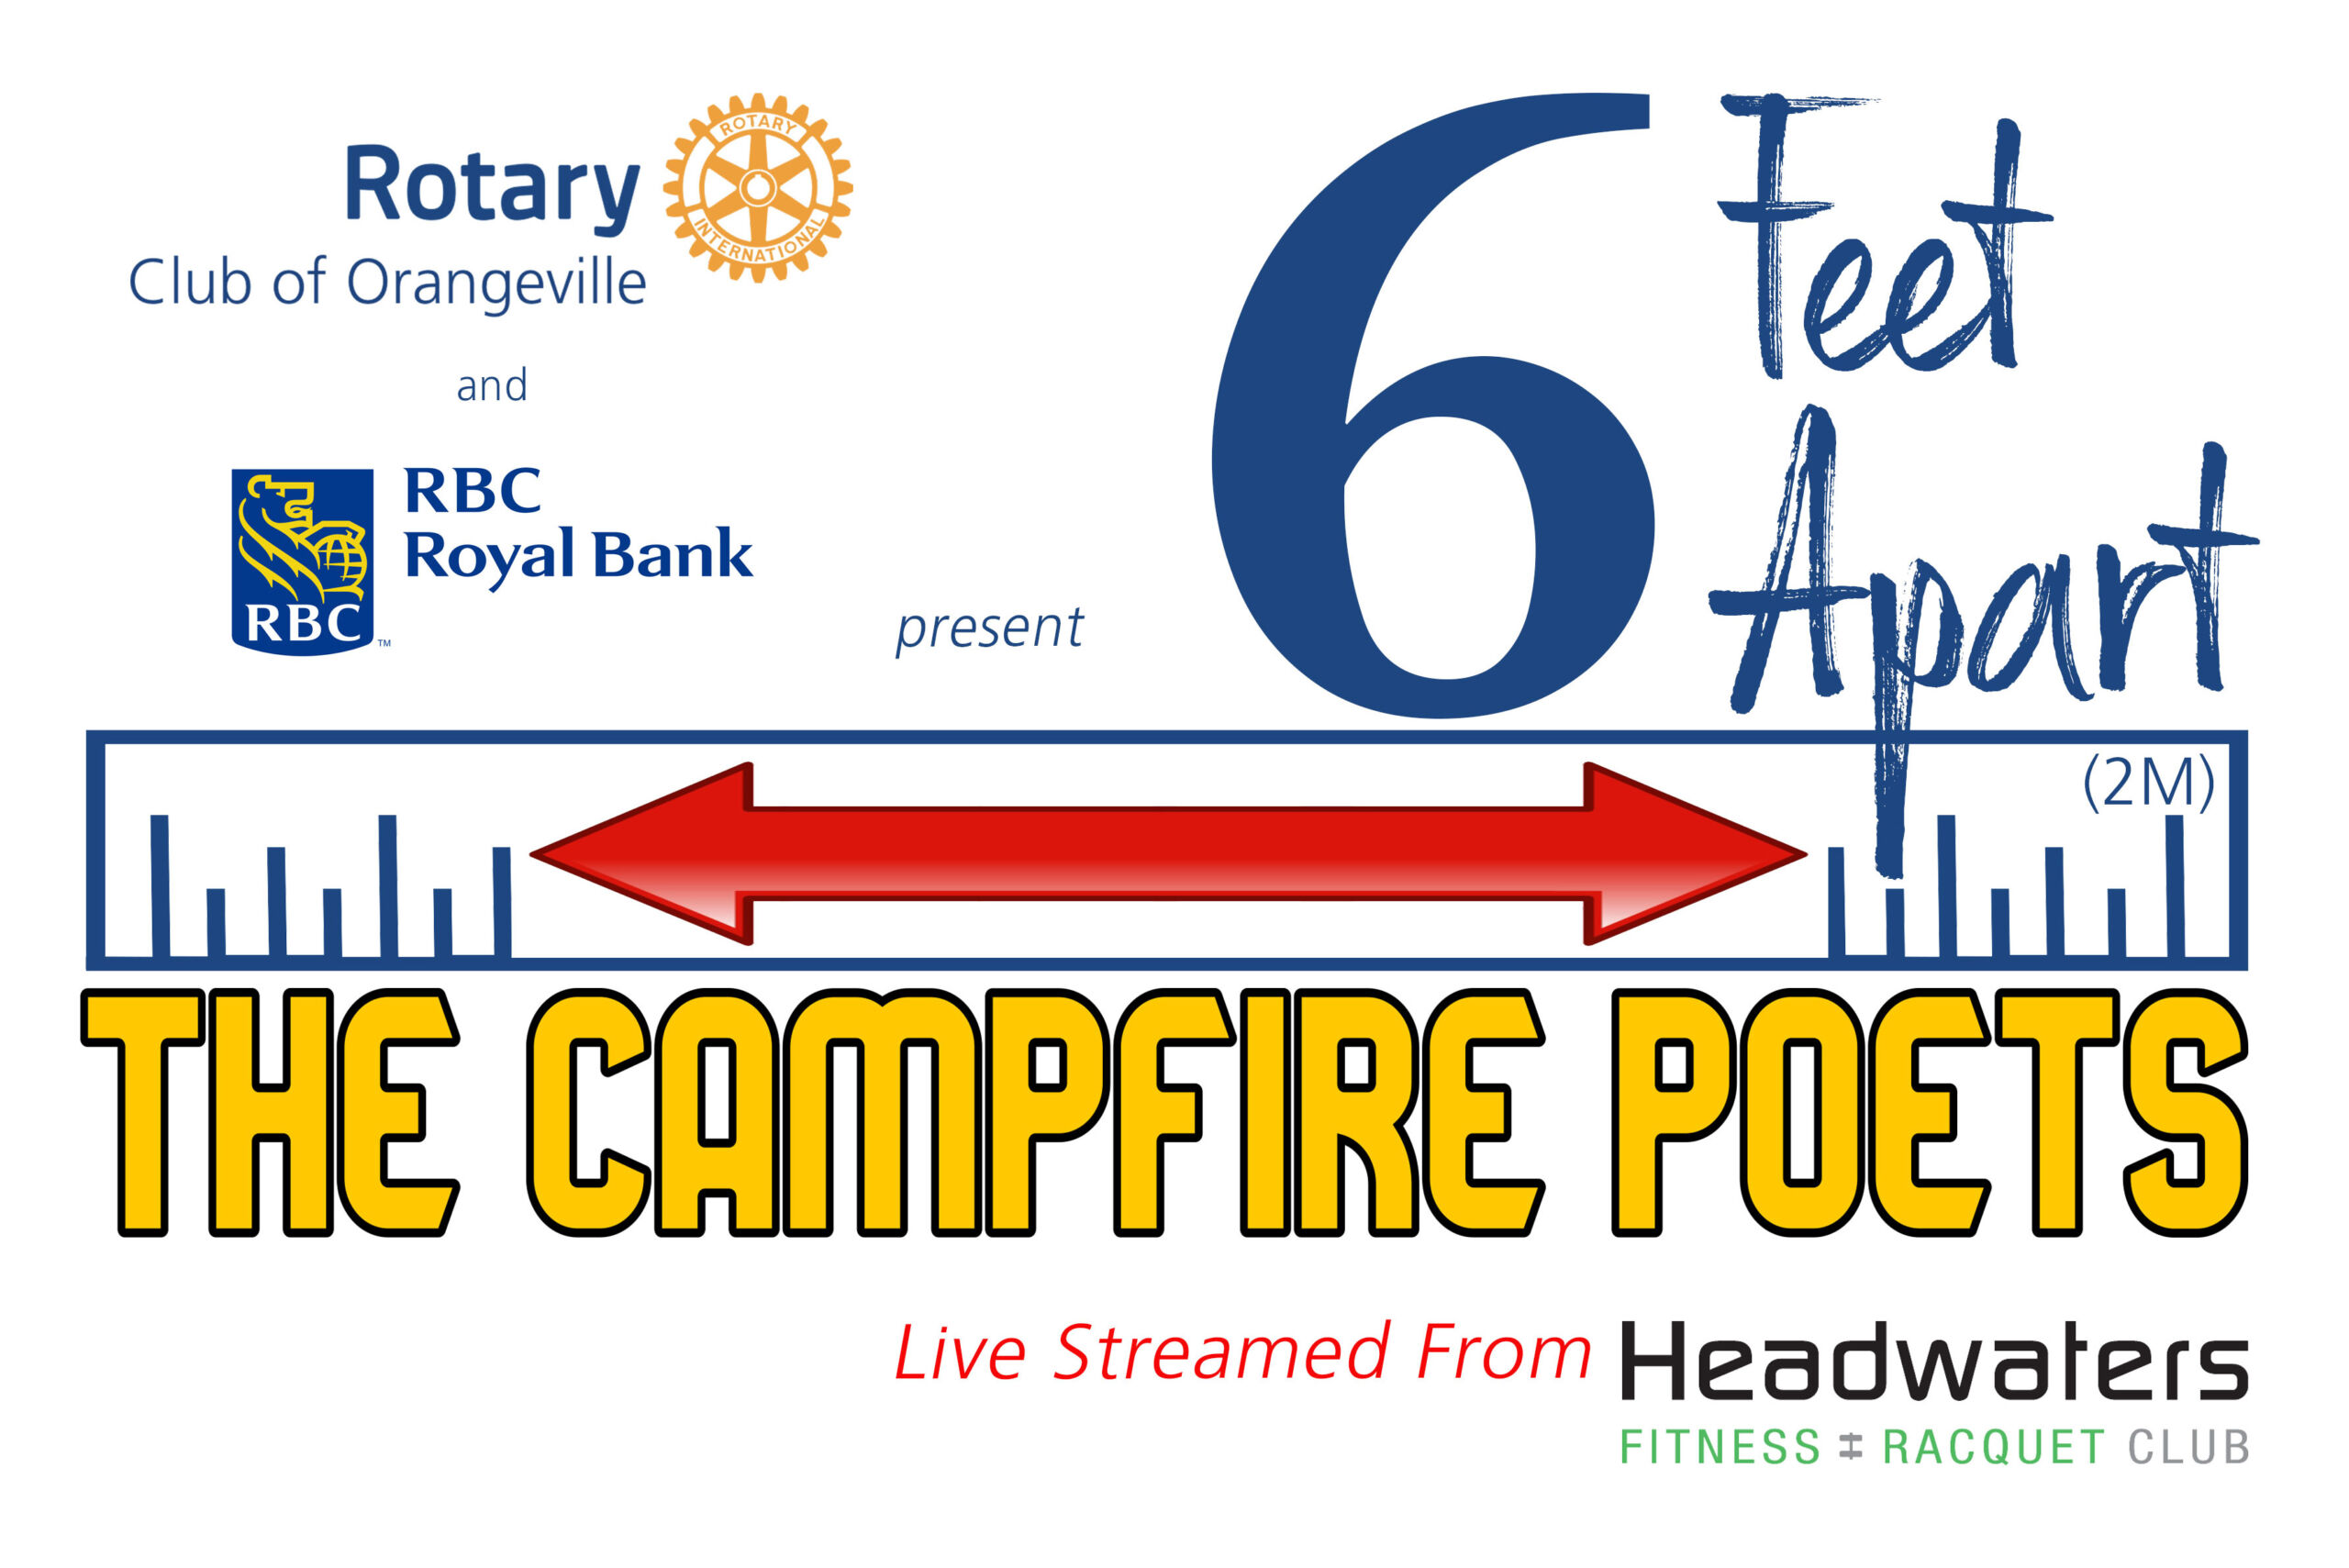 The Rotary Club of Orangeville and RBC present 6 Feet Apart; The Campfire Poets in Concert. Streamed live from Headwaters Racquet Club.